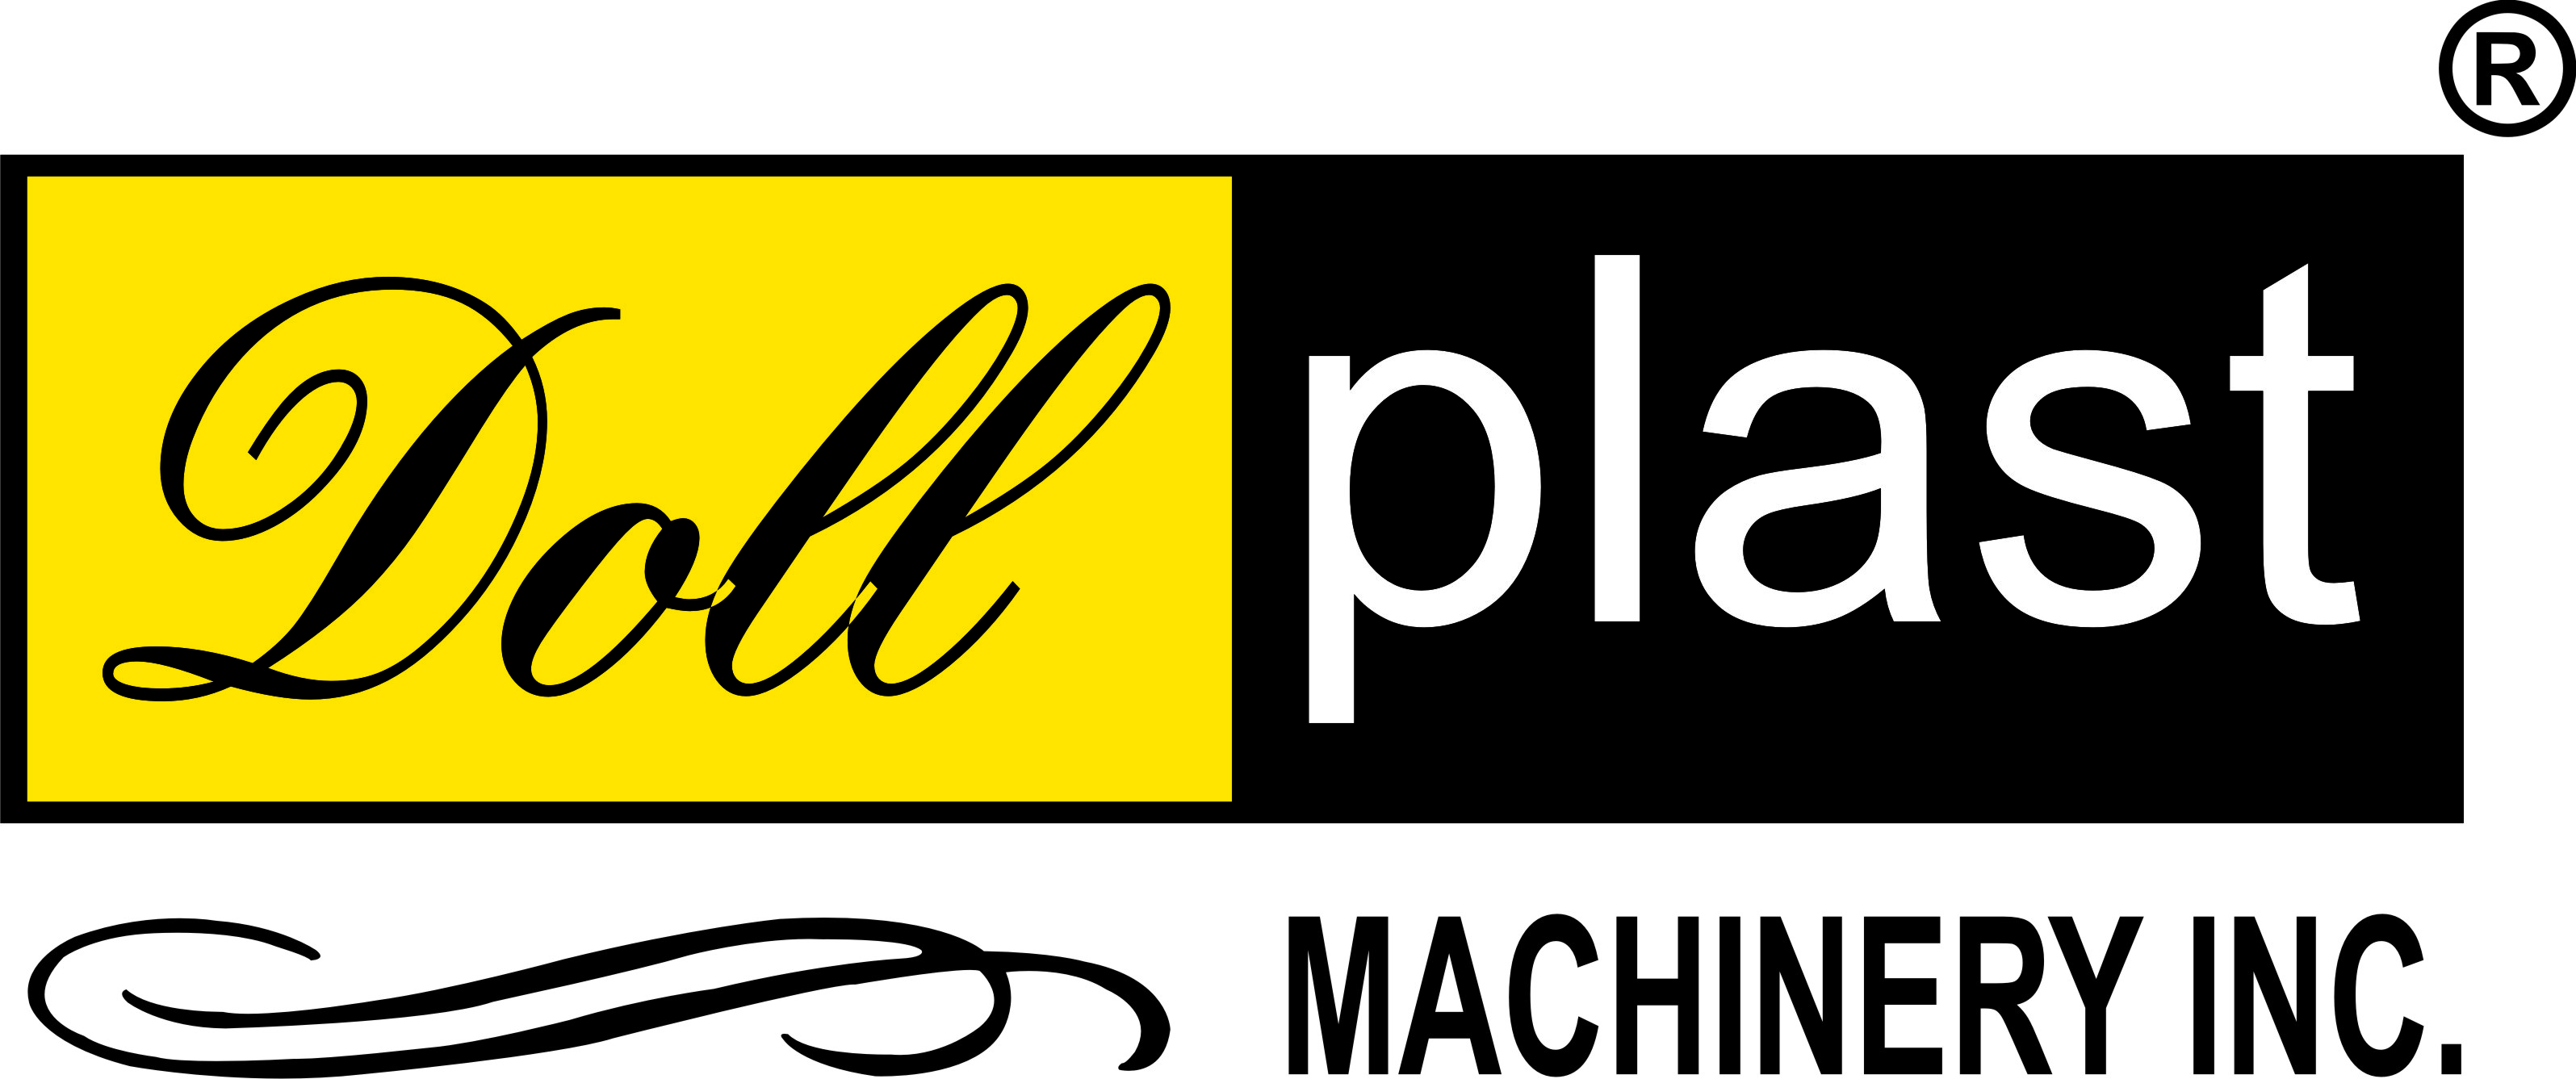 Dollplast Machinery Inc.